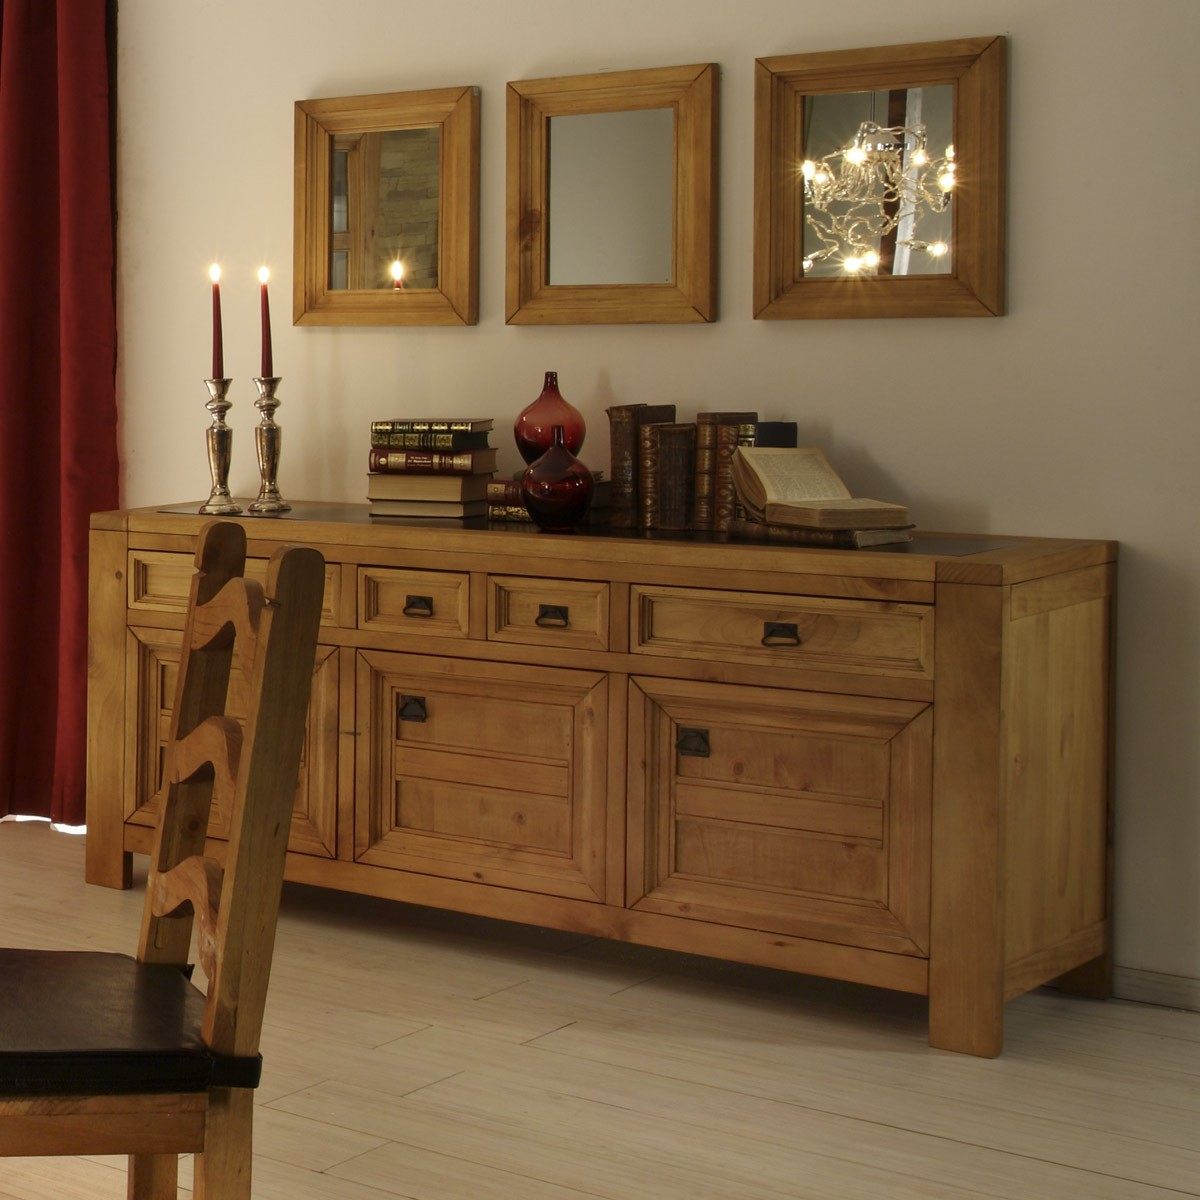 sideboard morelia 3 trg in pinie massivholz ge lt. Black Bedroom Furniture Sets. Home Design Ideas